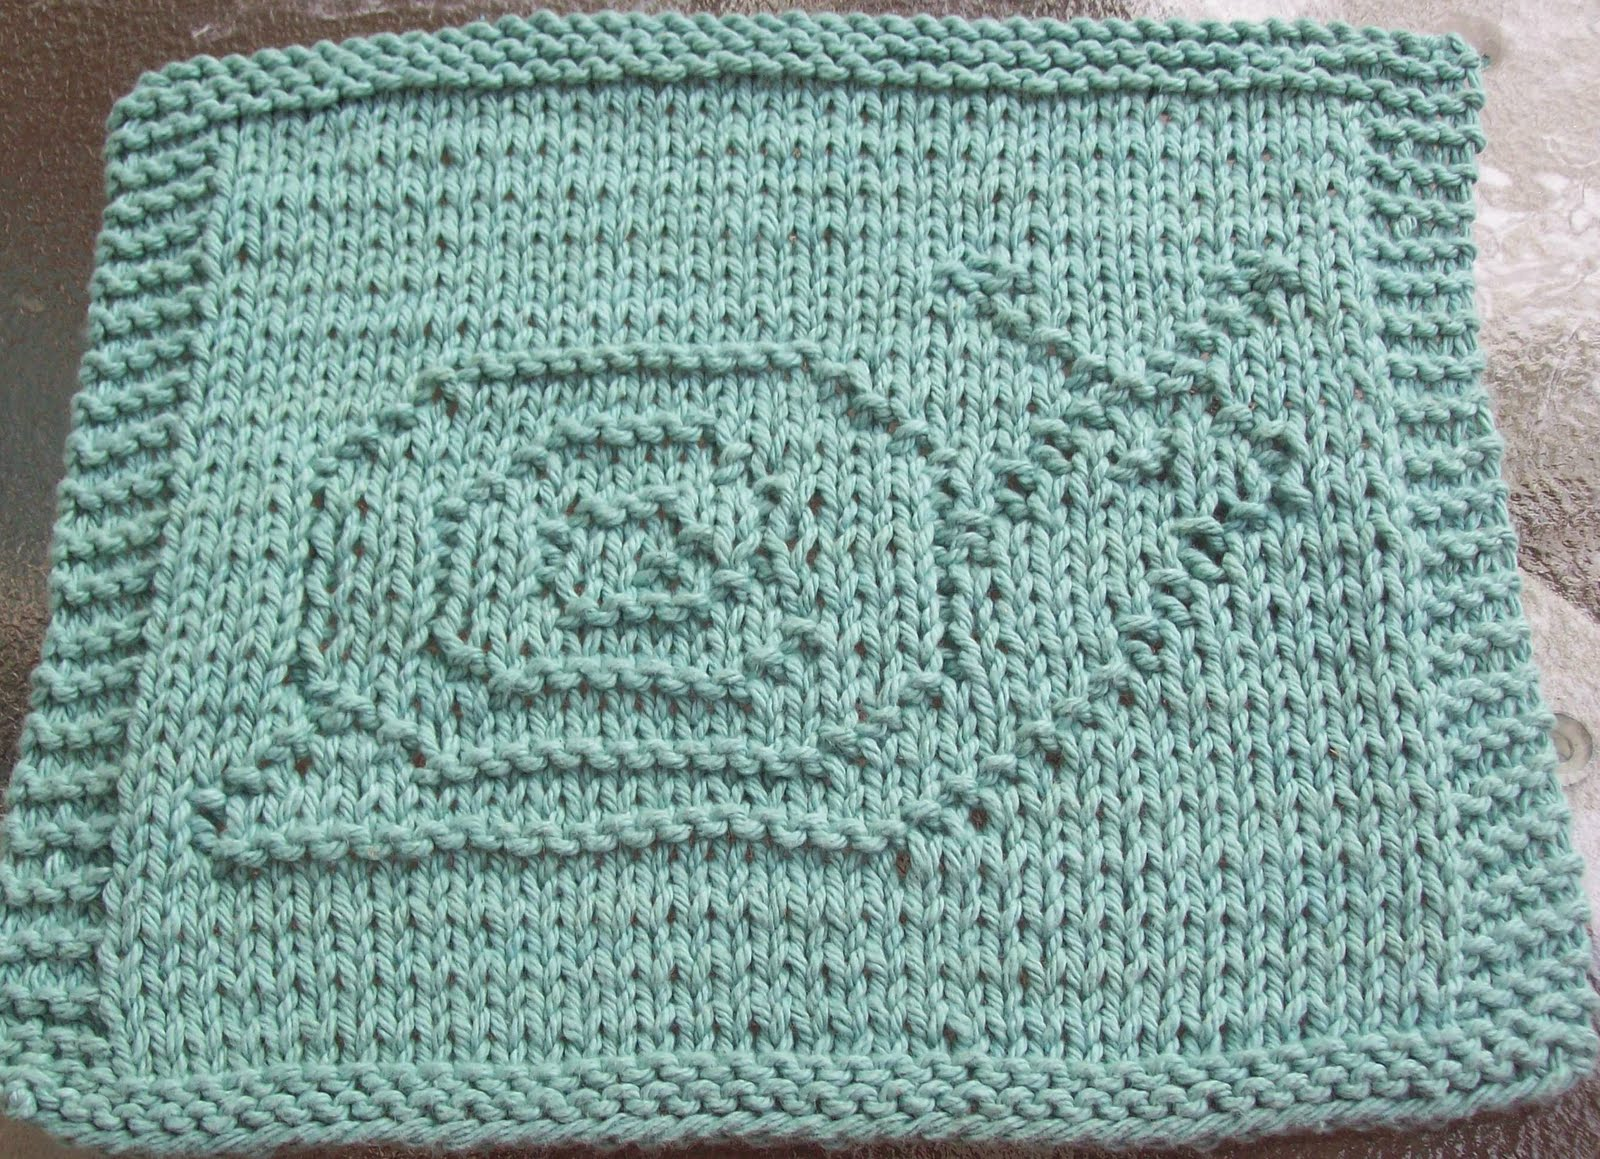 DigKnitty Designs: Snail Knit Dishcloth Pattern